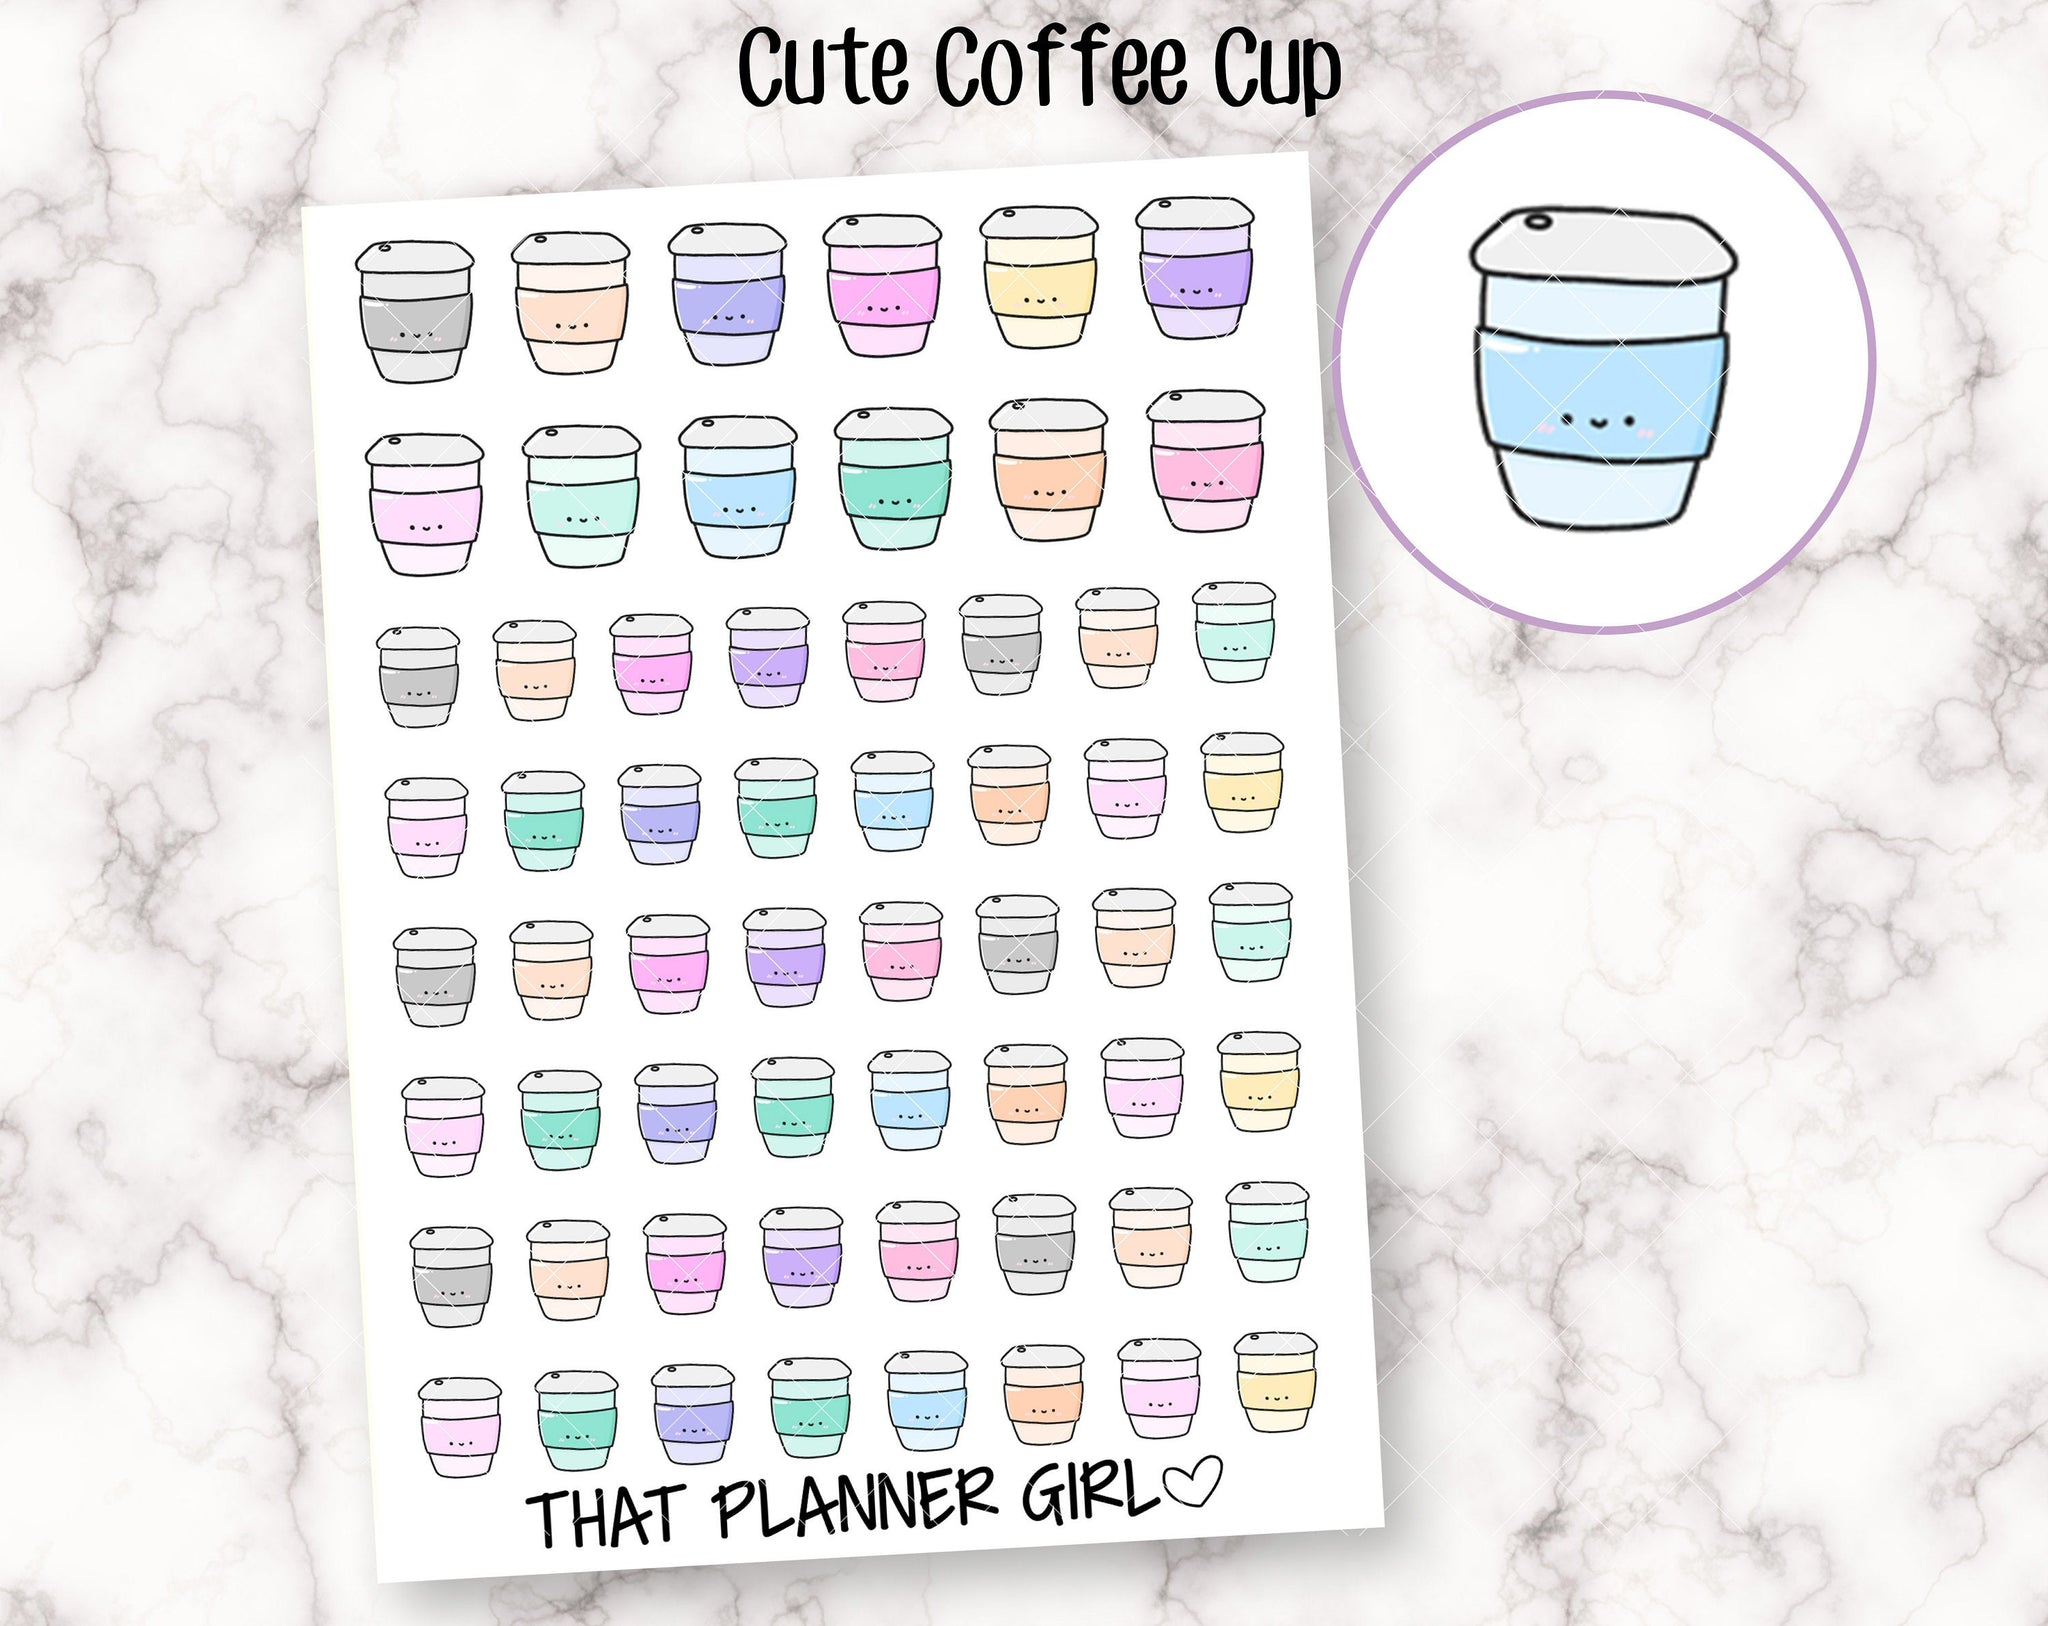 Adorable Coffee Cup Doodle Sticker